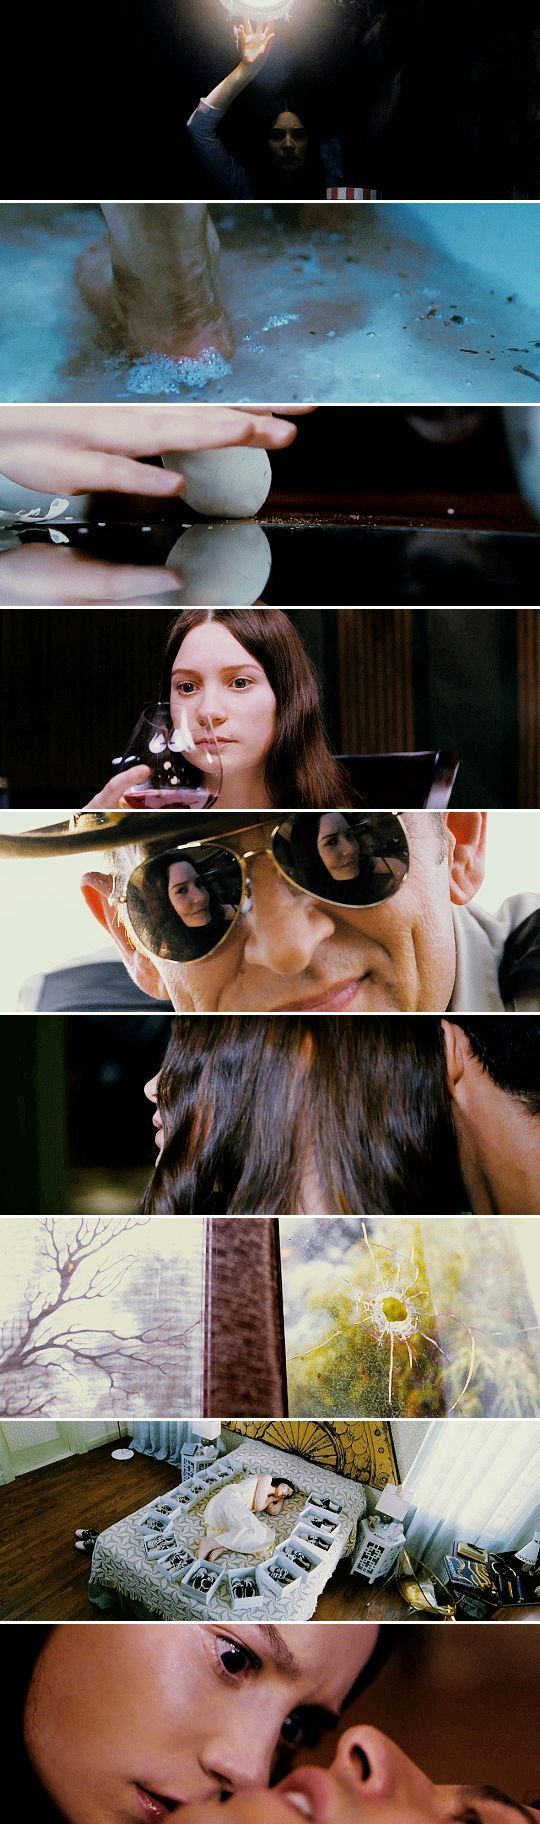 "Stoker: ""Of course, I still love you, Richard. I just have to love you a little less now"". Masterpiece."